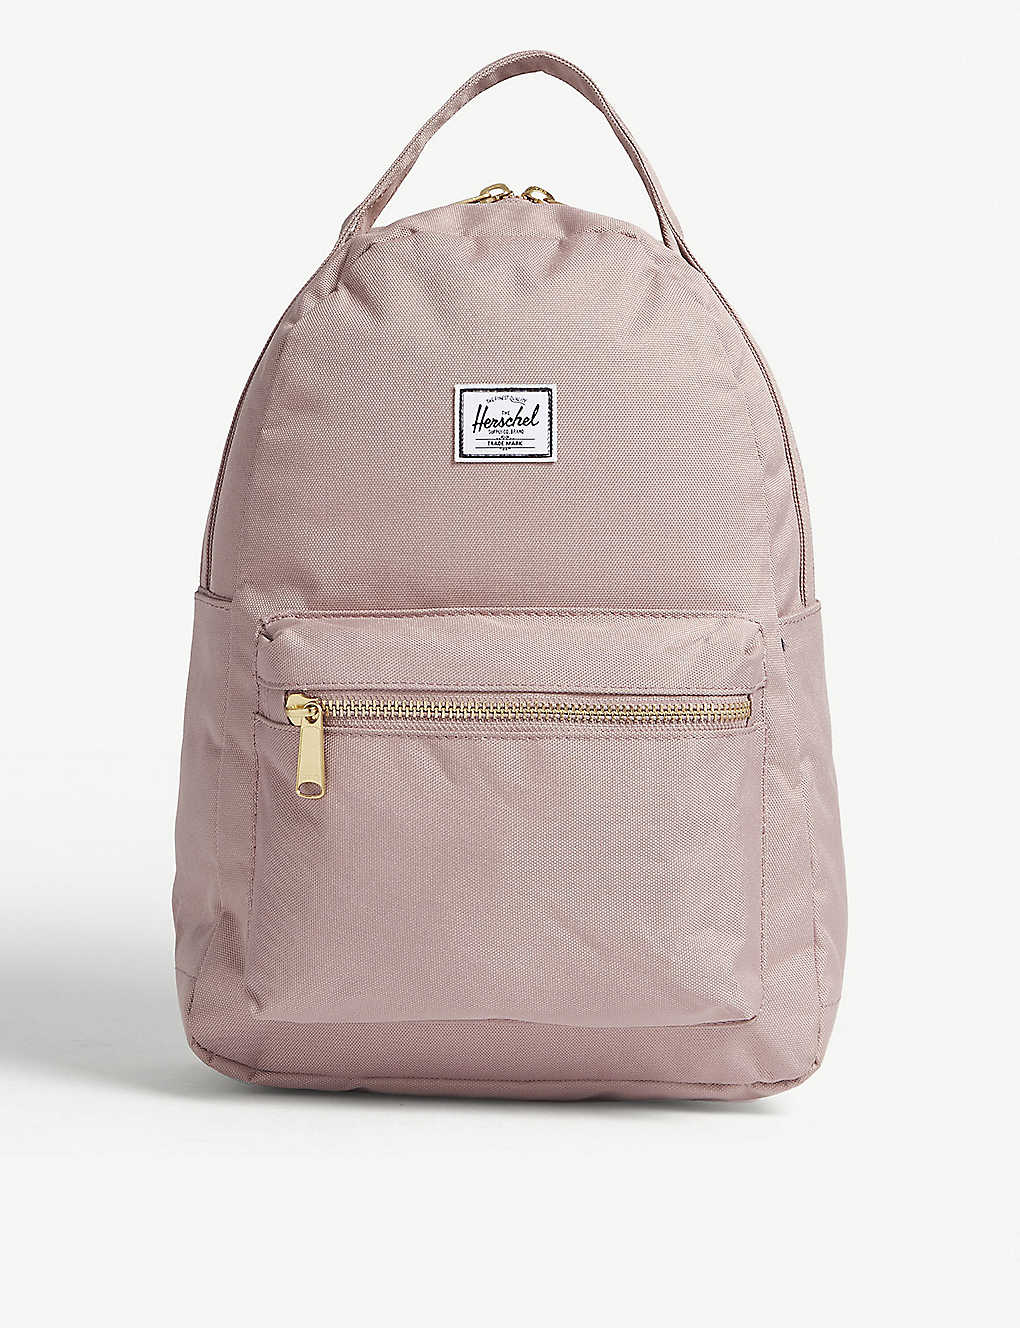 1e4c4a5e17 HERSCHEL SUPPLY CO - Nova mini backpack